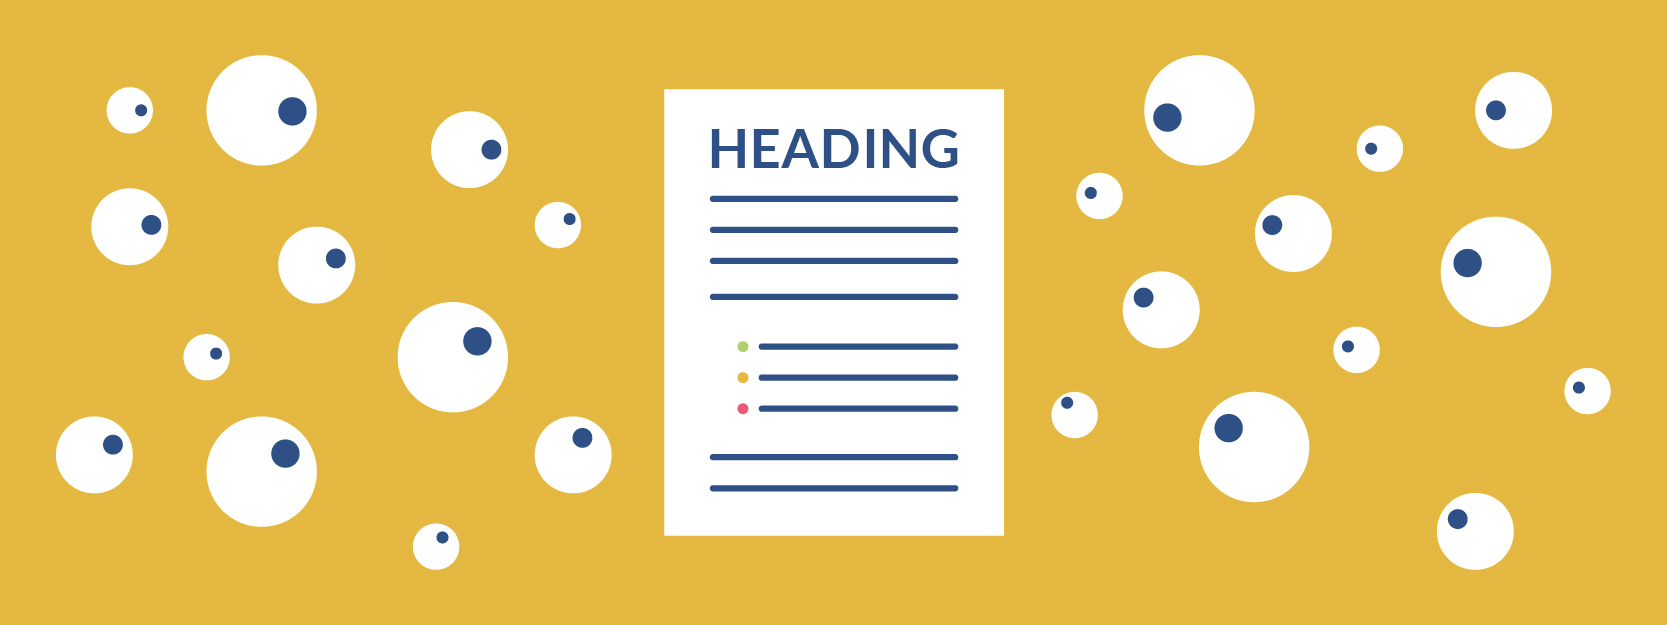 5 Tips To Craft An Eye Catching Resume Headline Proviso Consulting